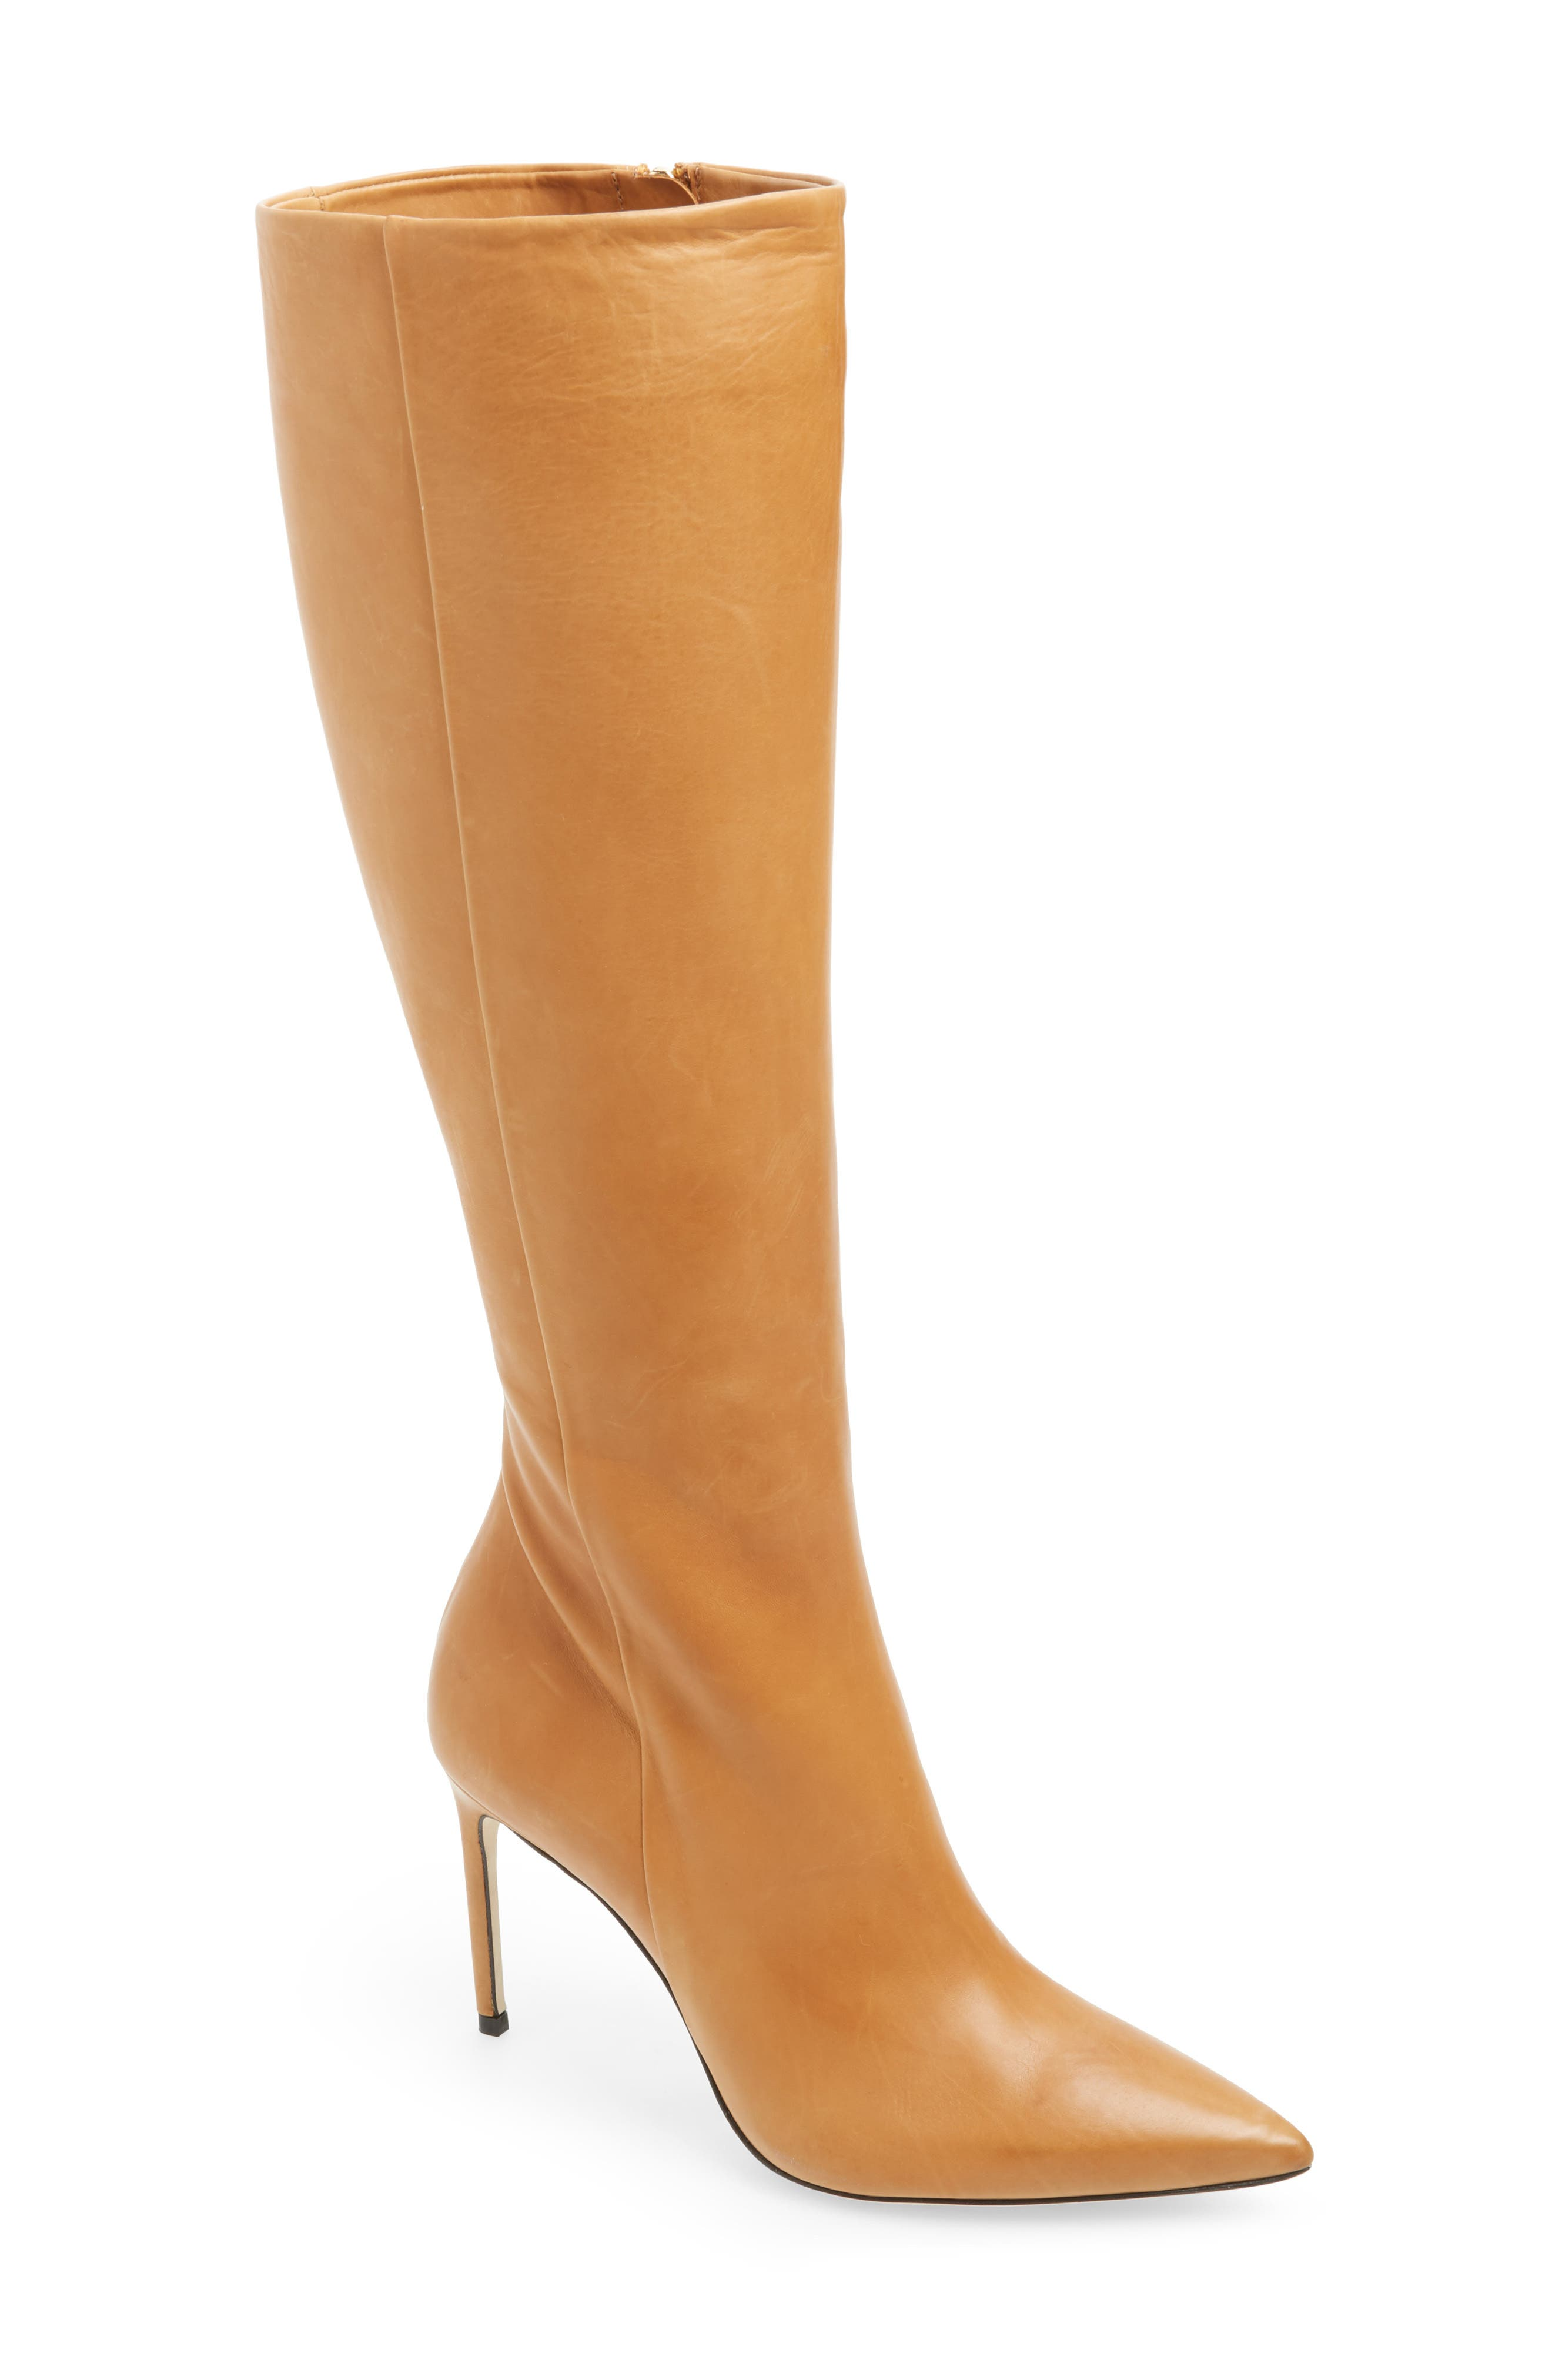 BRIAN ATWOOD Knee High Boot in Camel Leather